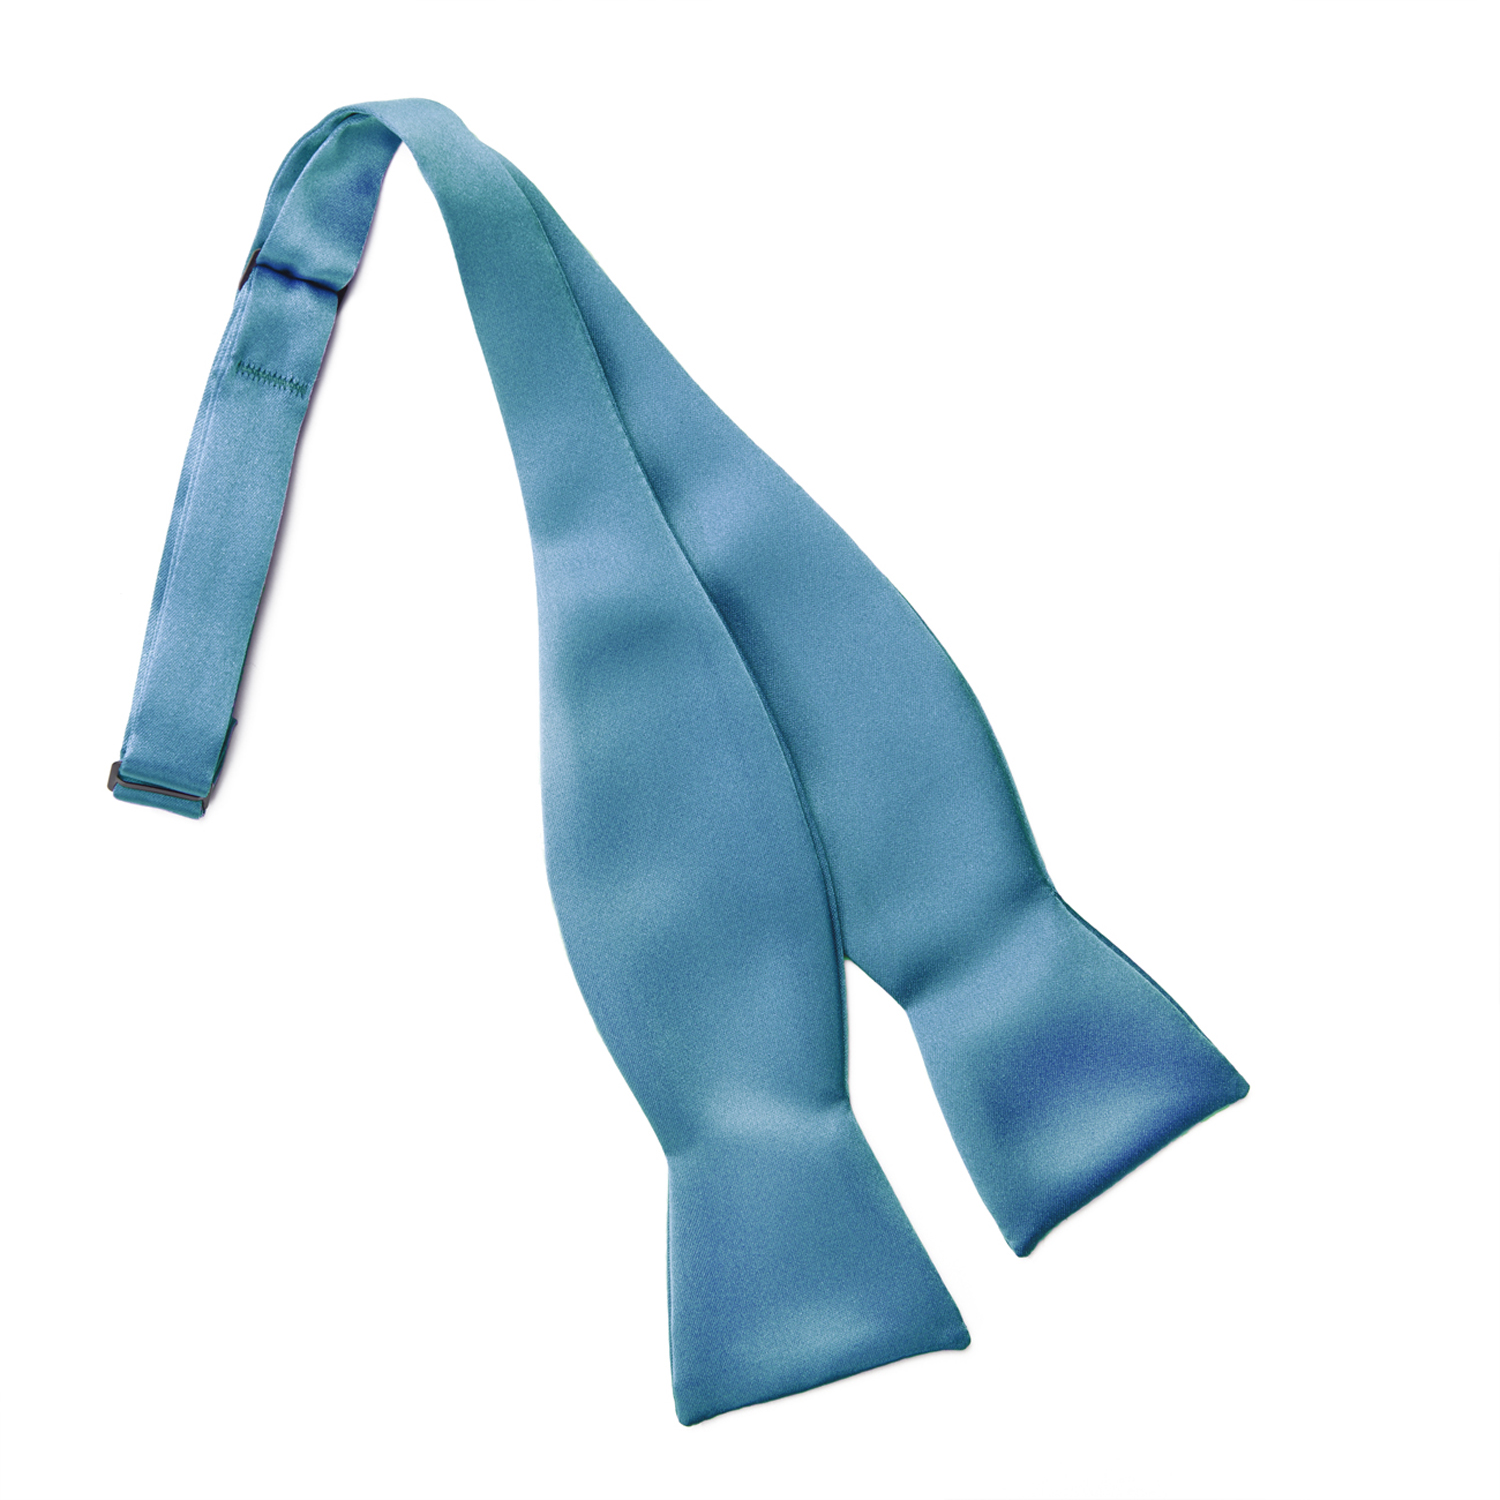 Also available in matching self tie to tie!